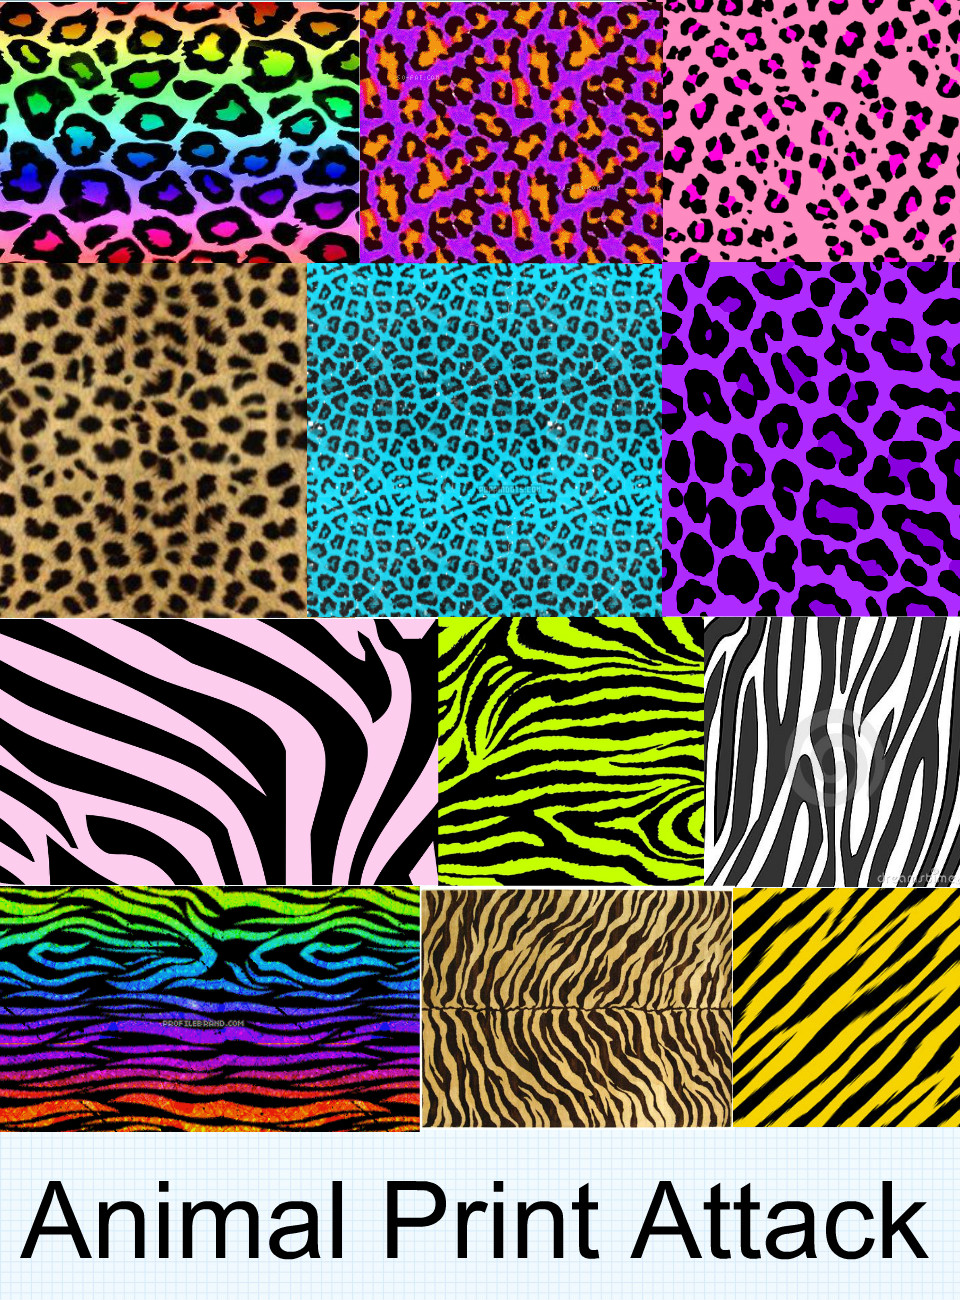 Colorful Cheetah Wallpapers - WallpaperSafari Multi Colored Zebra Print Wallpapers